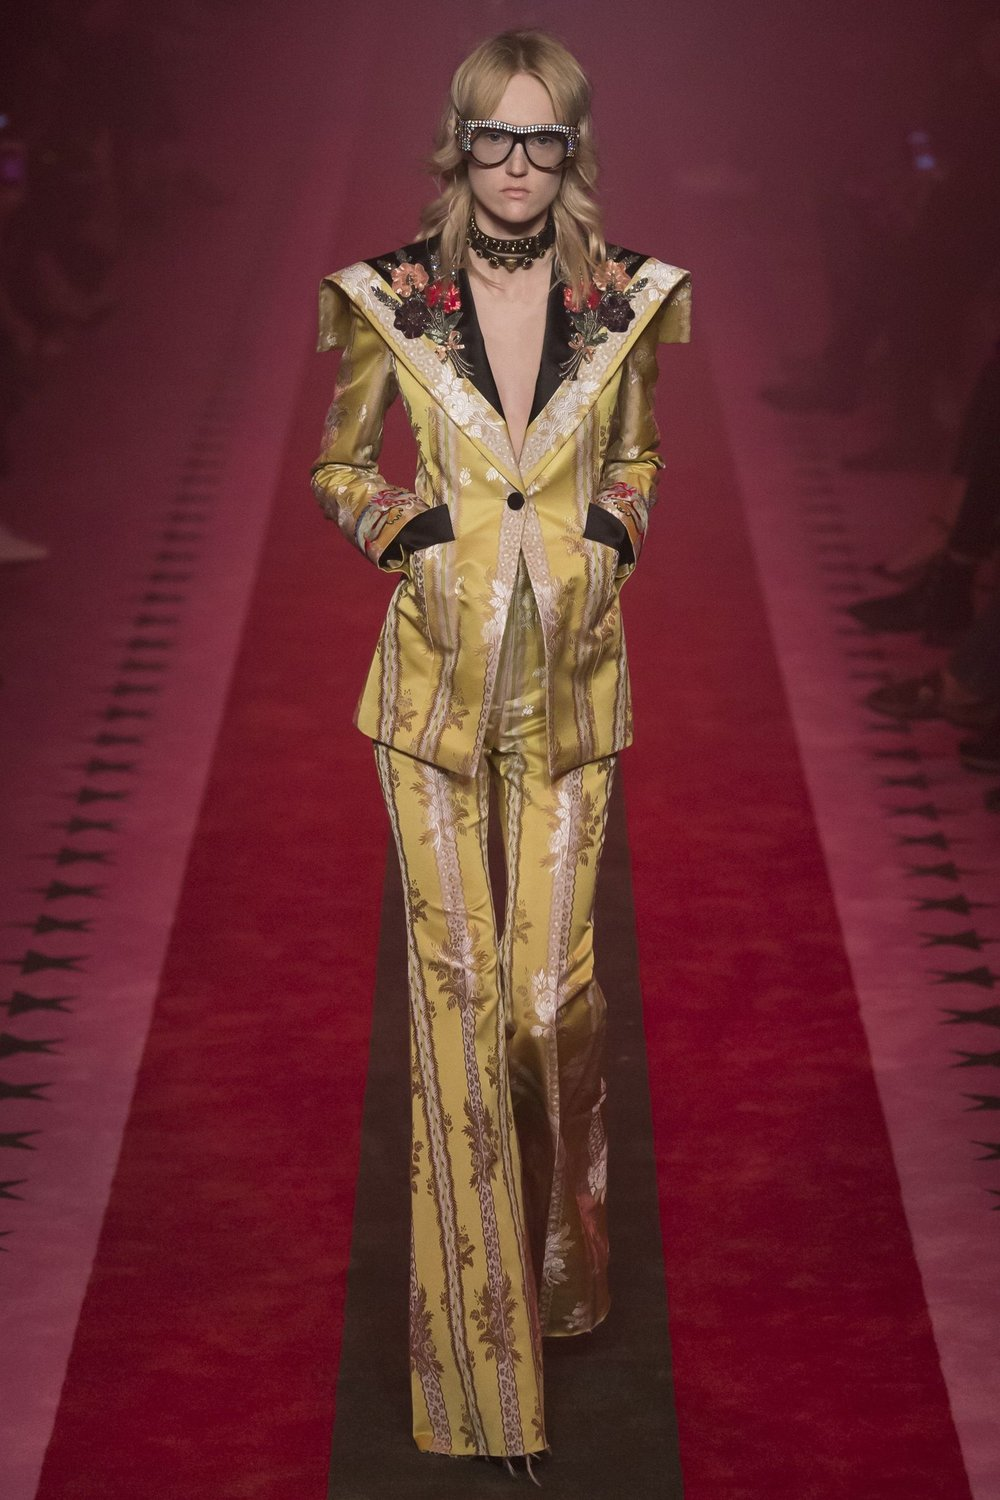 1dafbbd57 You could make cases for either Alessandro Michele and Demna Gvasalia being  the most influential men in fashion. However different their styles may be